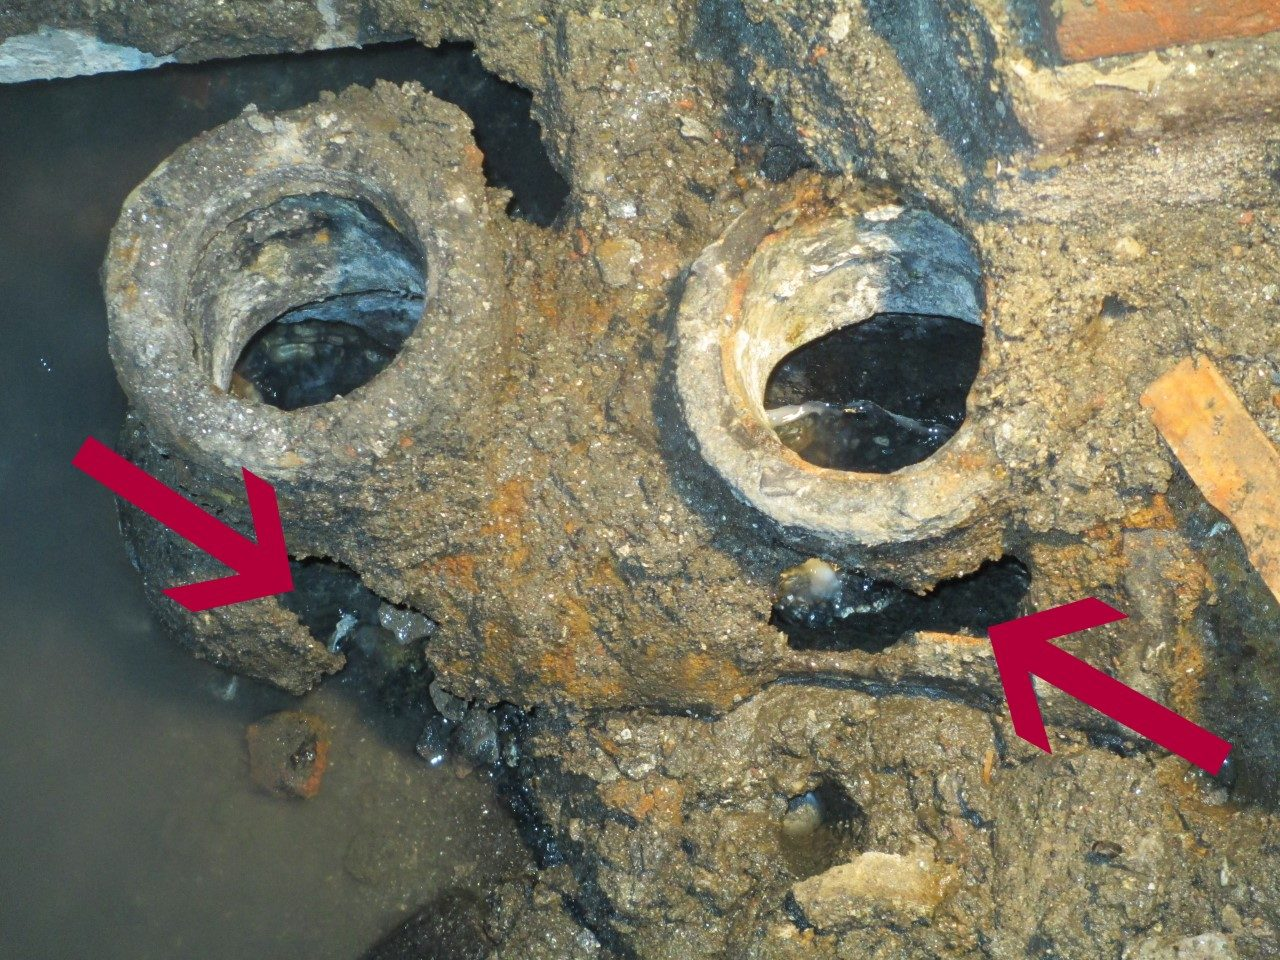 corroded sewer pipes